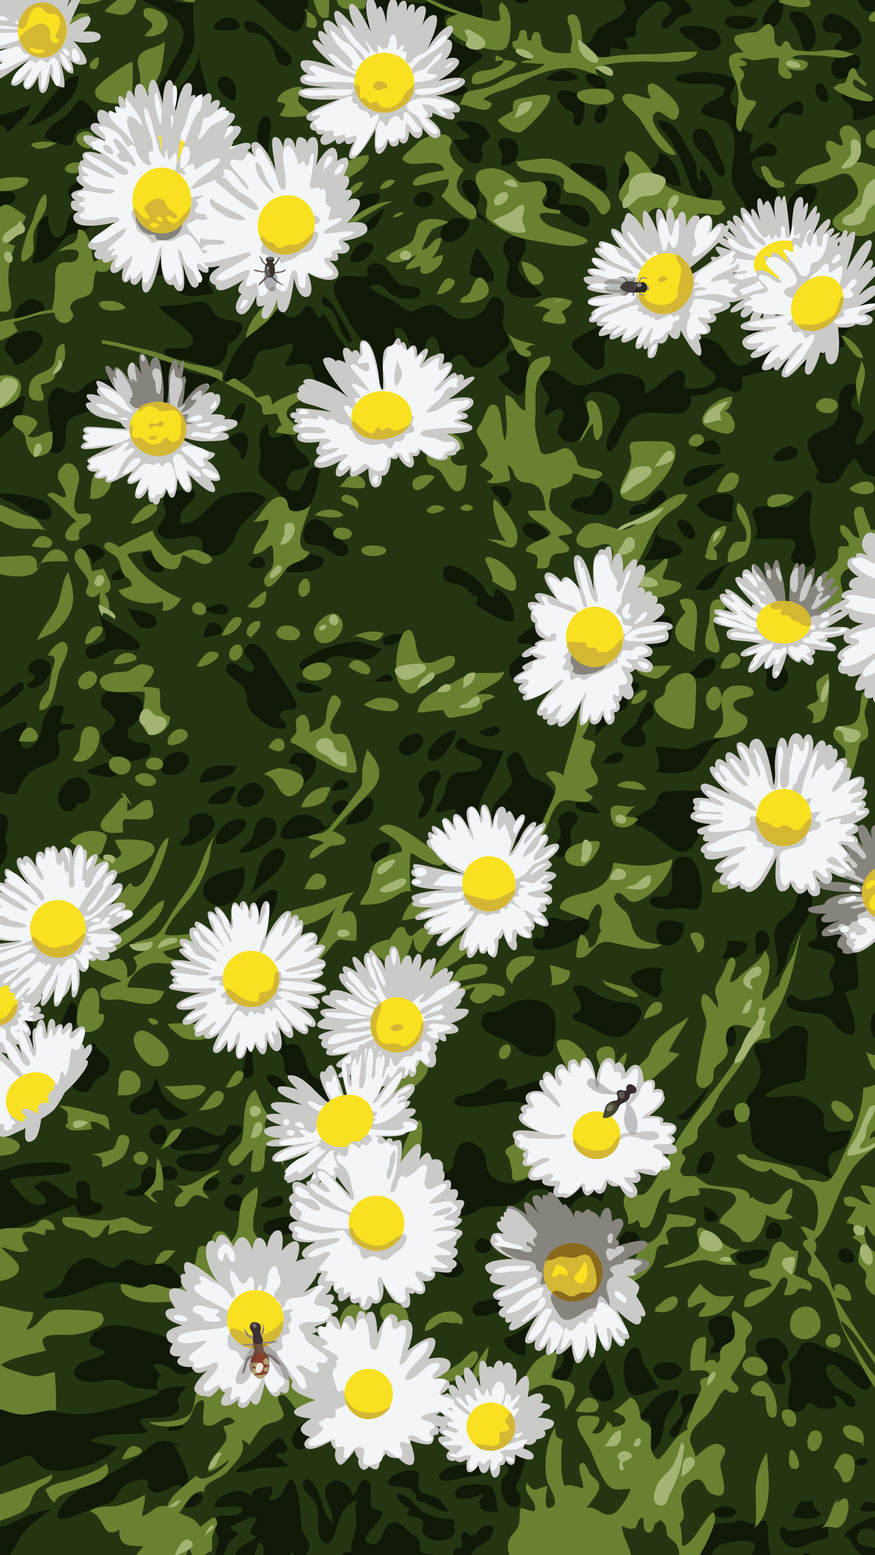 Julian Opie, Daisies. © Julian Opie and Lisson Gallery